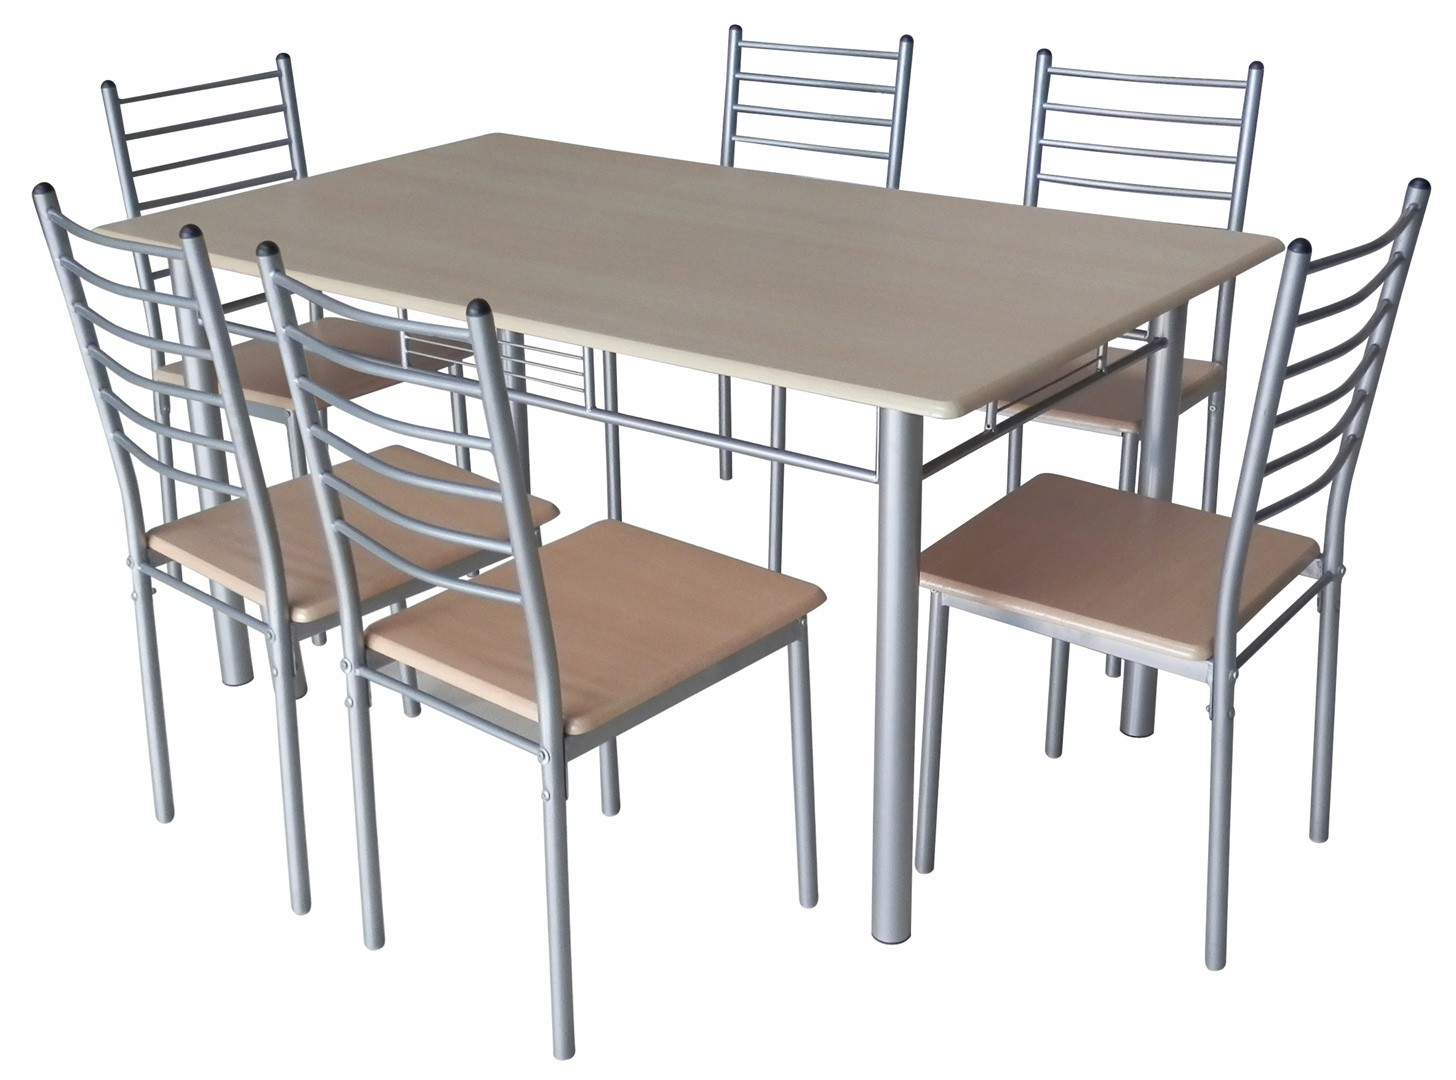 Ensemble table et chaises de cuisine but chaise id es for Table de cuisine et chaises